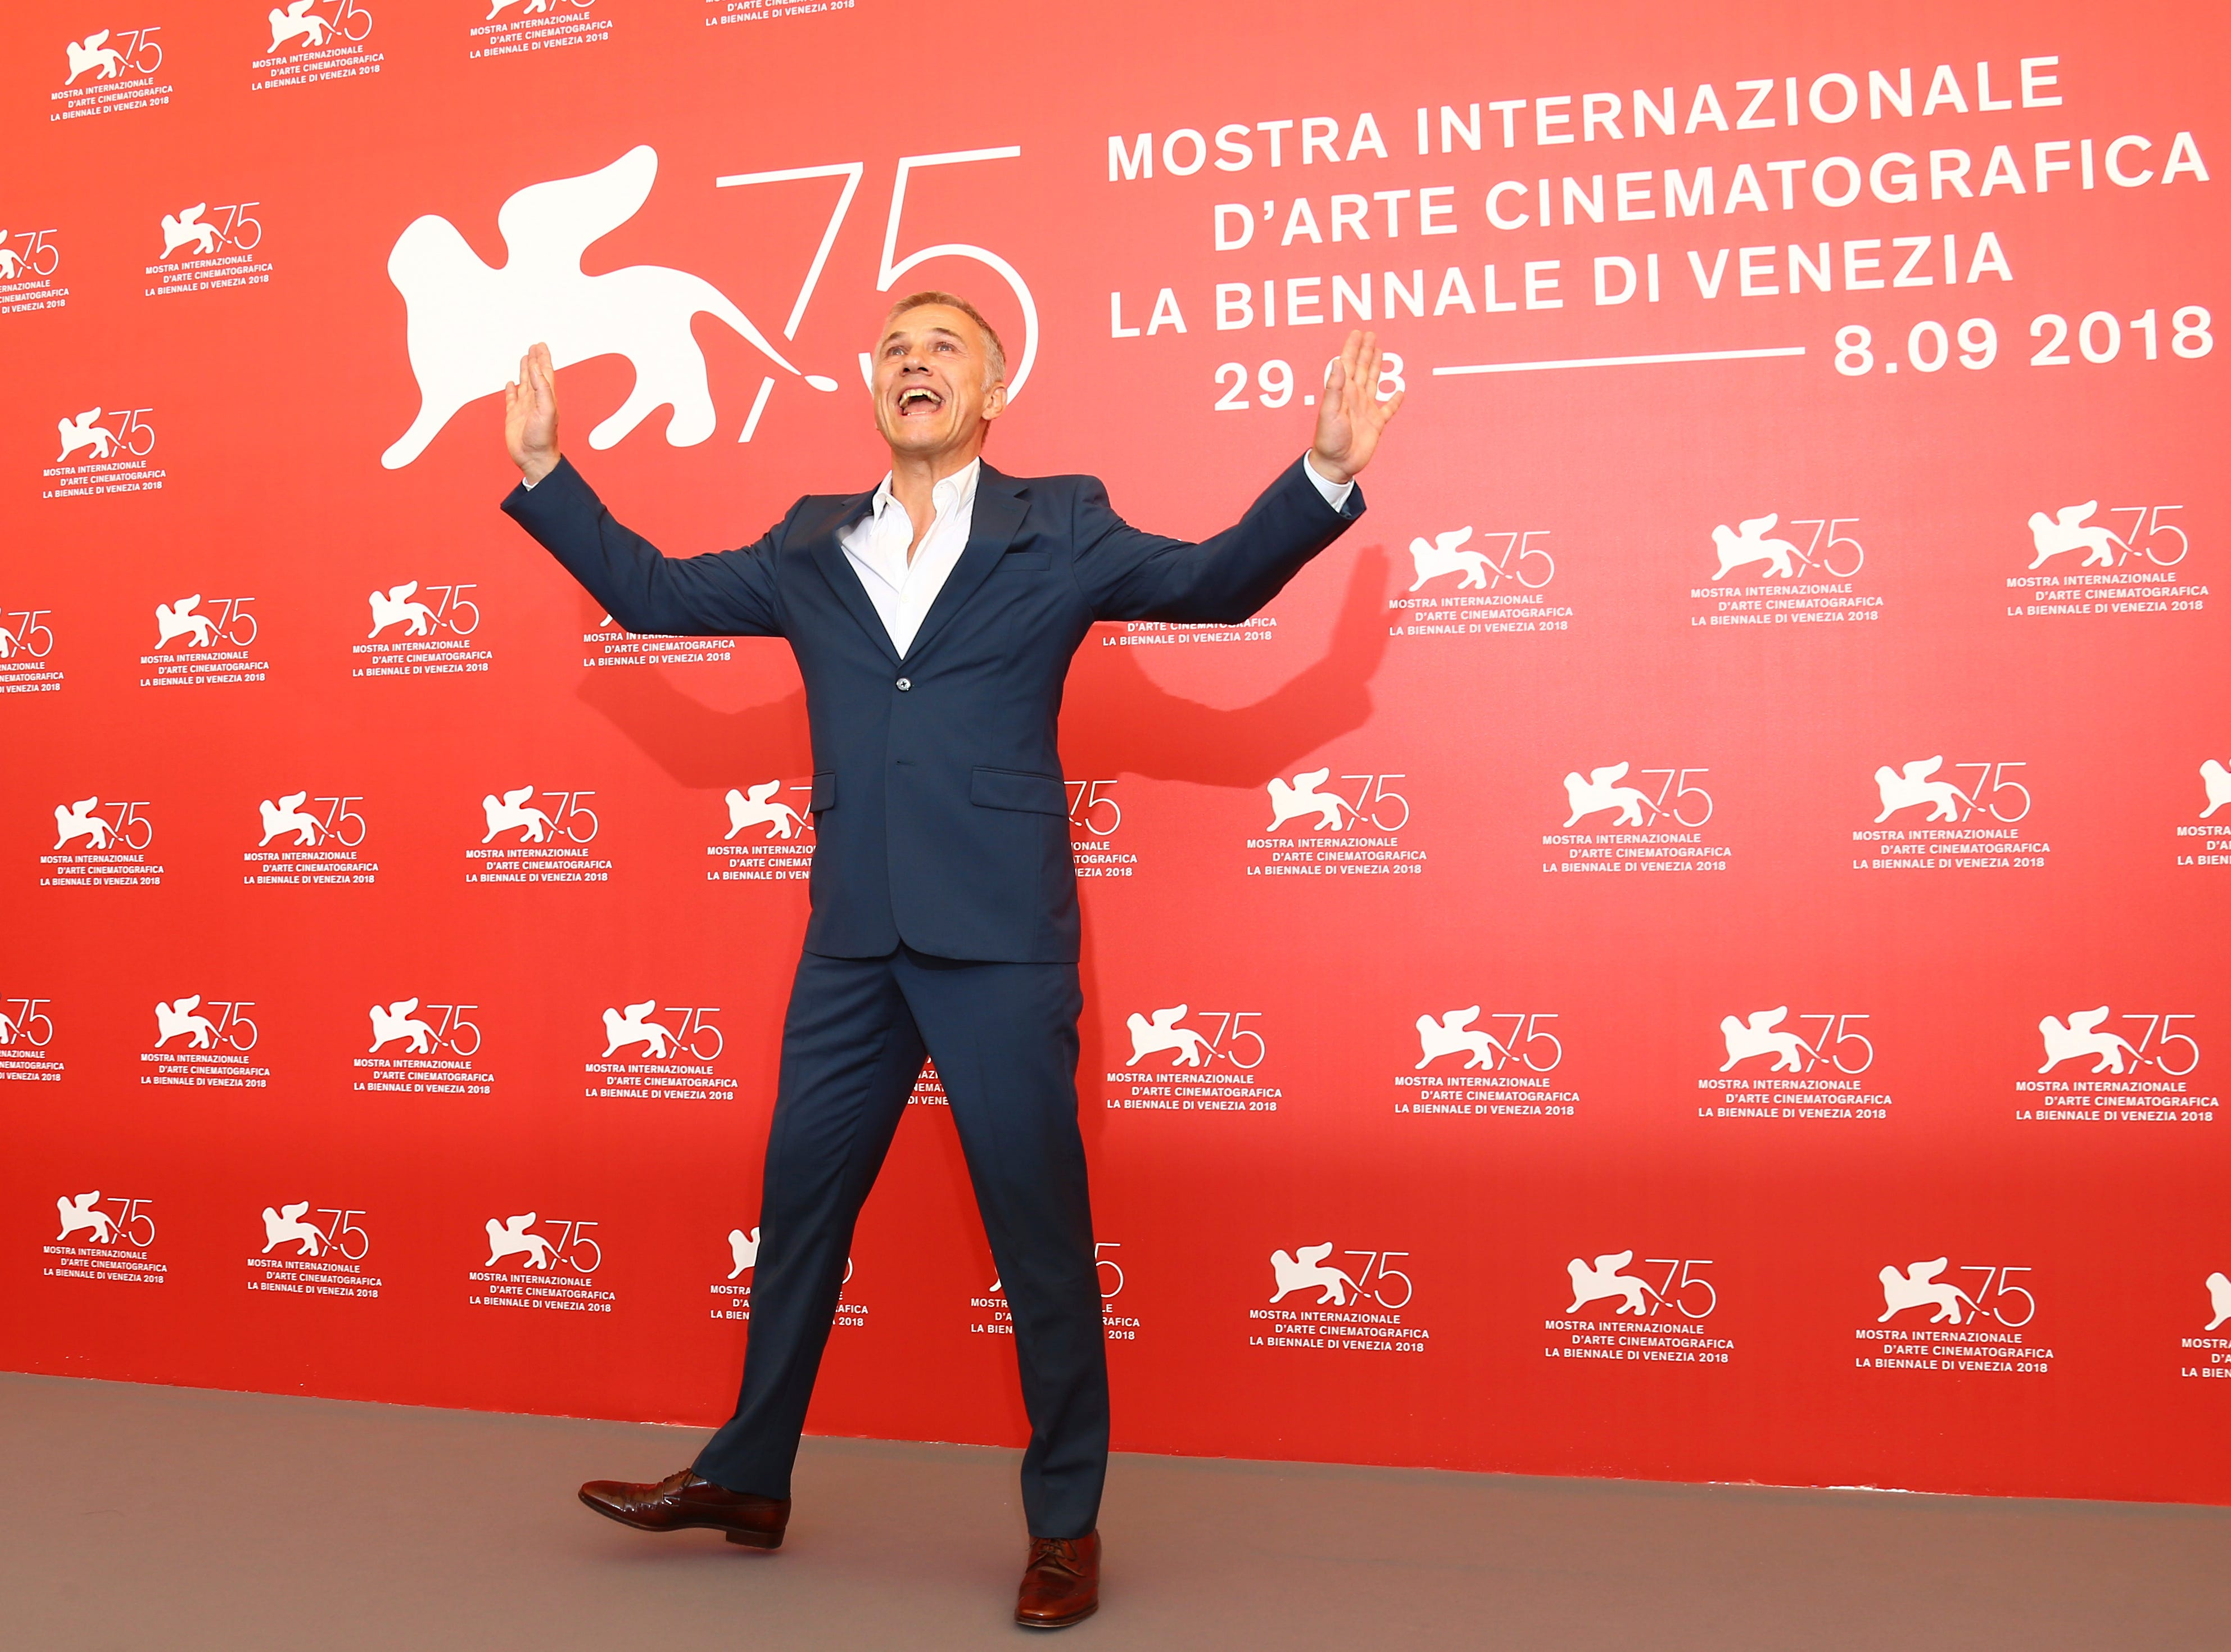 Jury member Christoph Waltz poses for photographers at the photo call for the Jury at the 75th edition of the Venice Film Festival in Venice, Italy, Wednesday, Aug. 29, 2018. (Photo by Joel C Ryan/Invision/AP) ORG XMIT: LENT115